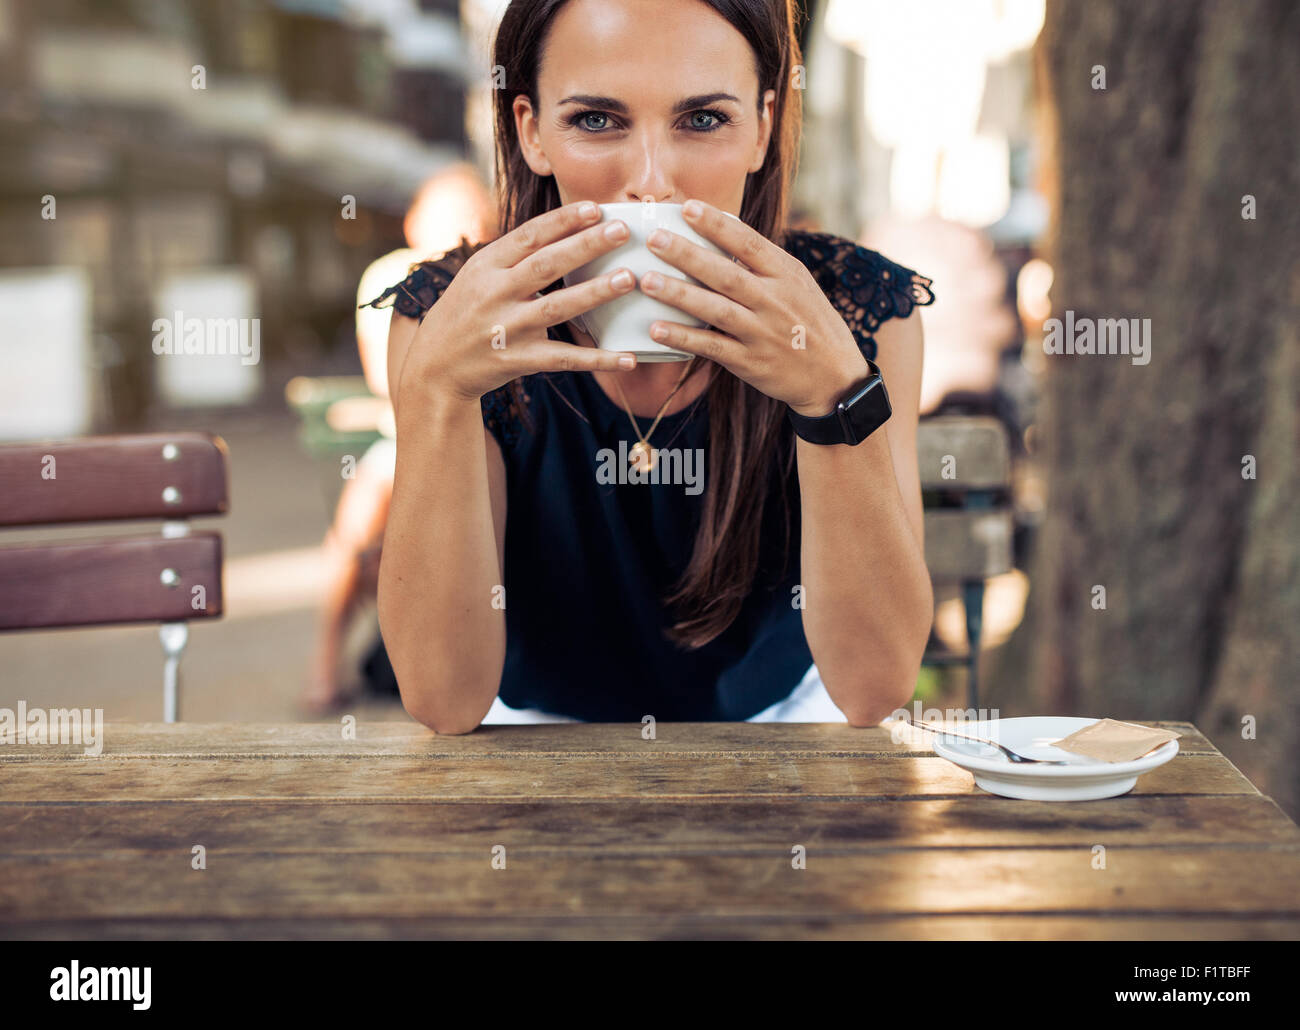 Young woman drinking coffee at a cafe and looking at the camera. Caucasian female sitting at table having a cup - Stock Image